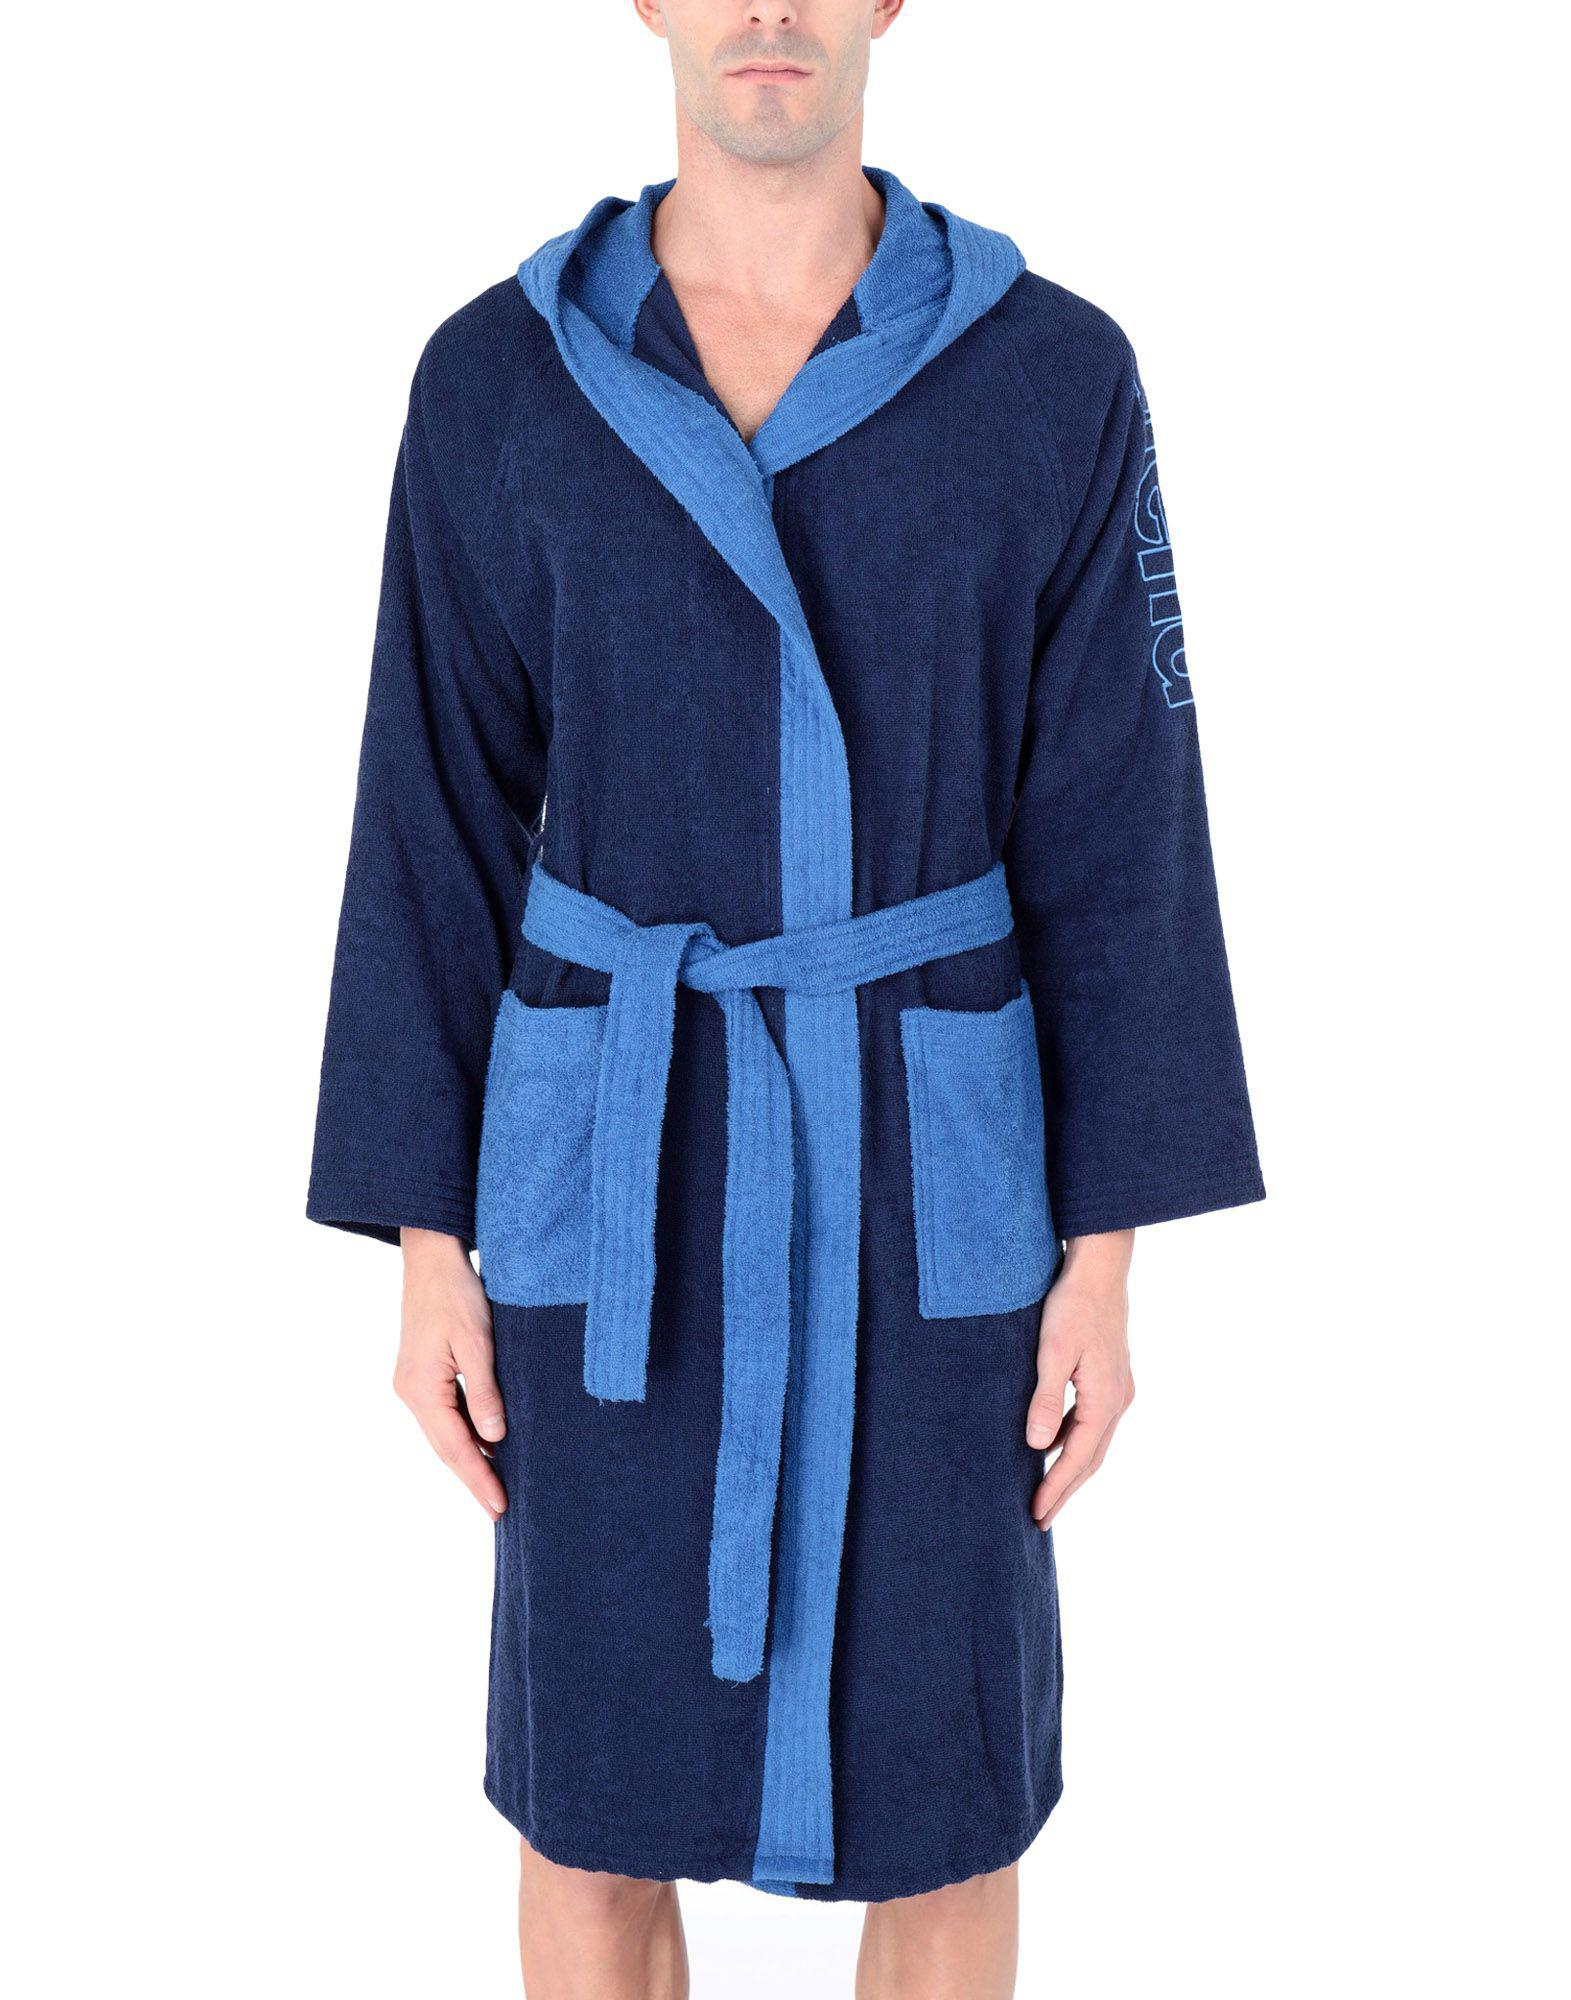 Arena Towelling Dressing Gown in Blue for Men - Lyst 8f5e535ba